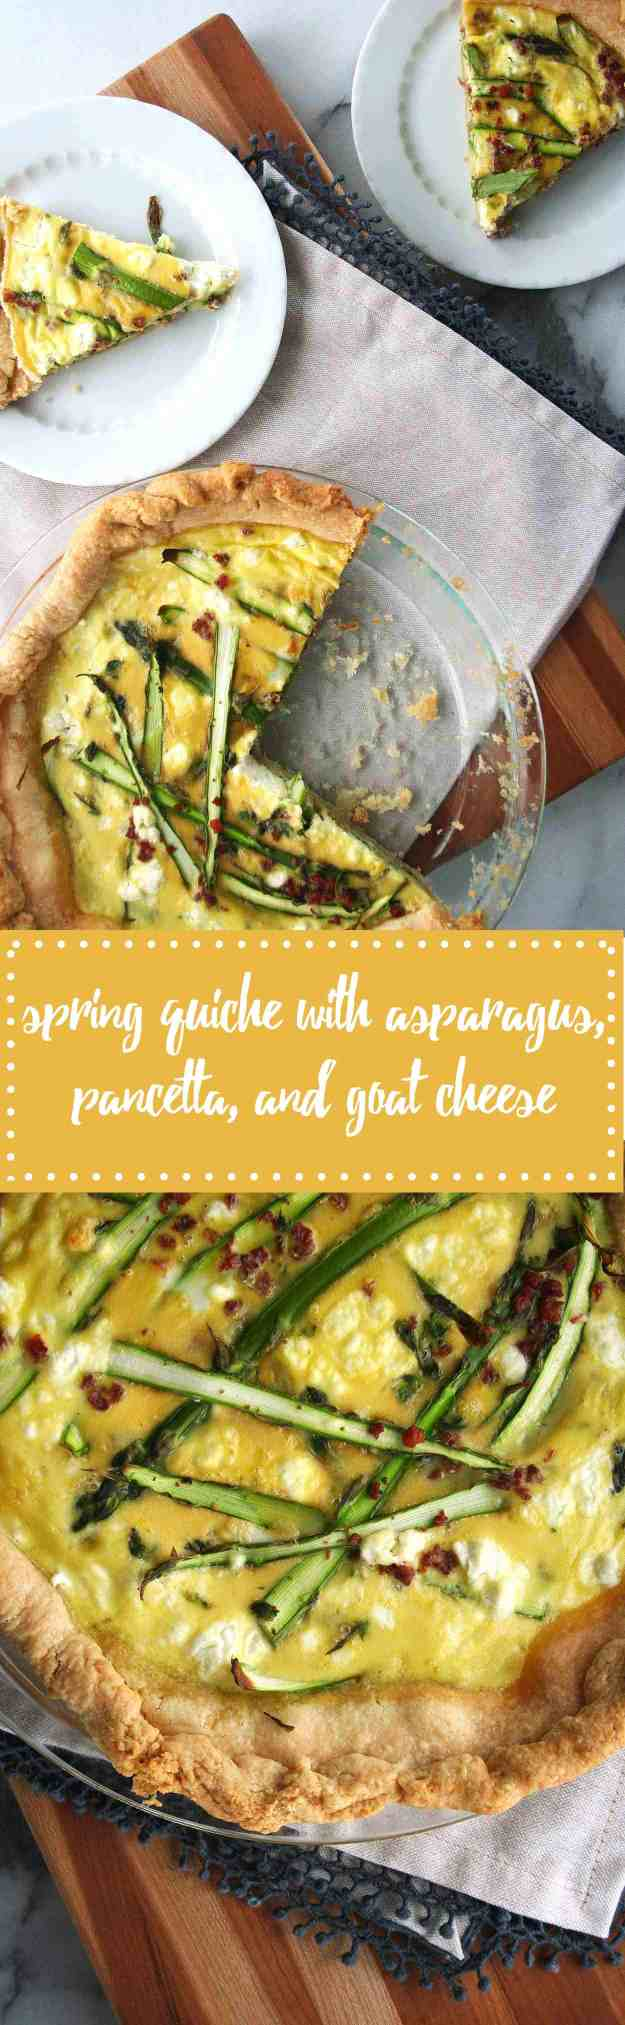 Spring Quiche with Asparagus, Pancetta, and Goat Cheese | hungrybynature.com